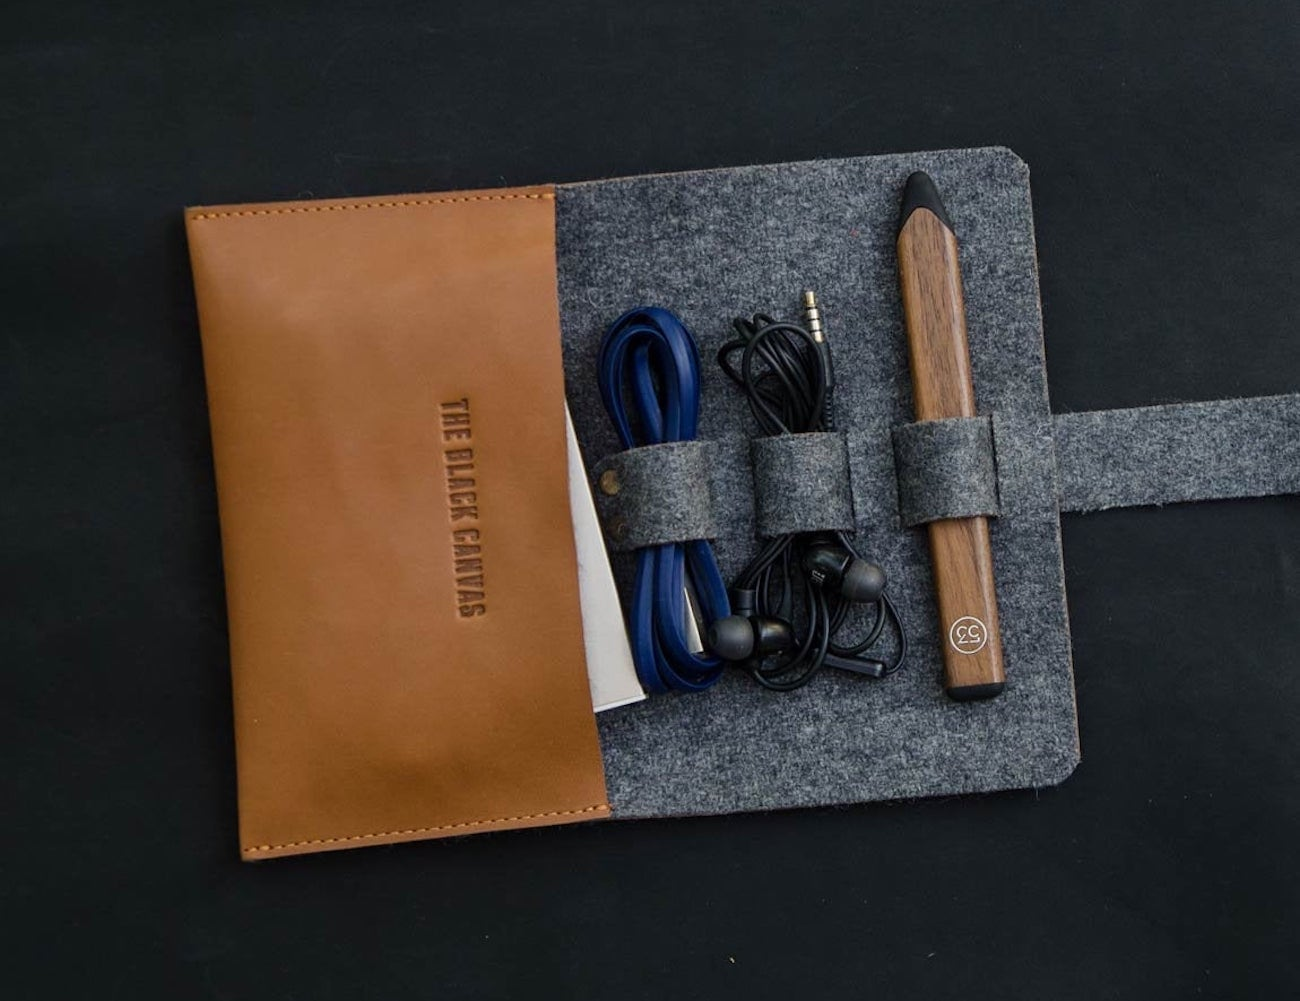 The Black Canvas leather & felt USB cable organizer makes for easy carrying